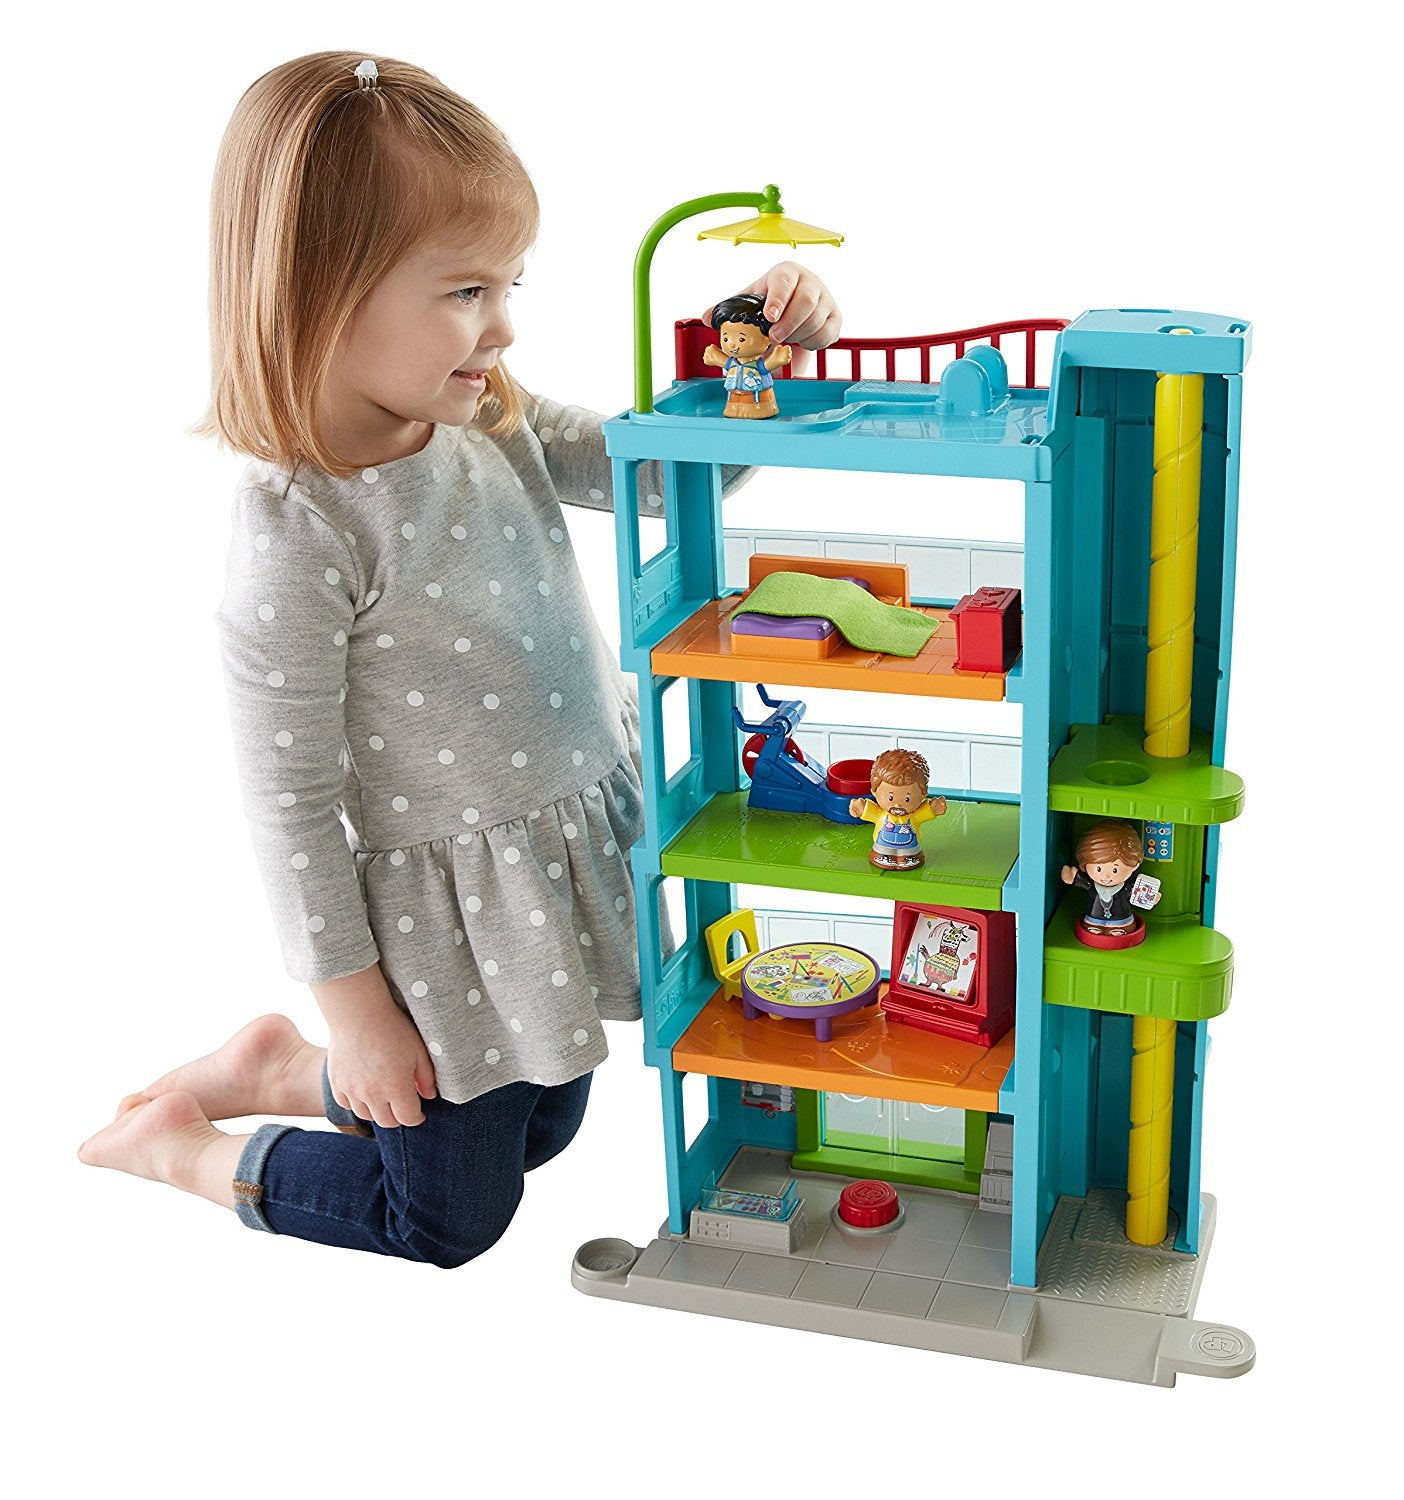 Fisher-Price Little People Friendly People Place DRL42